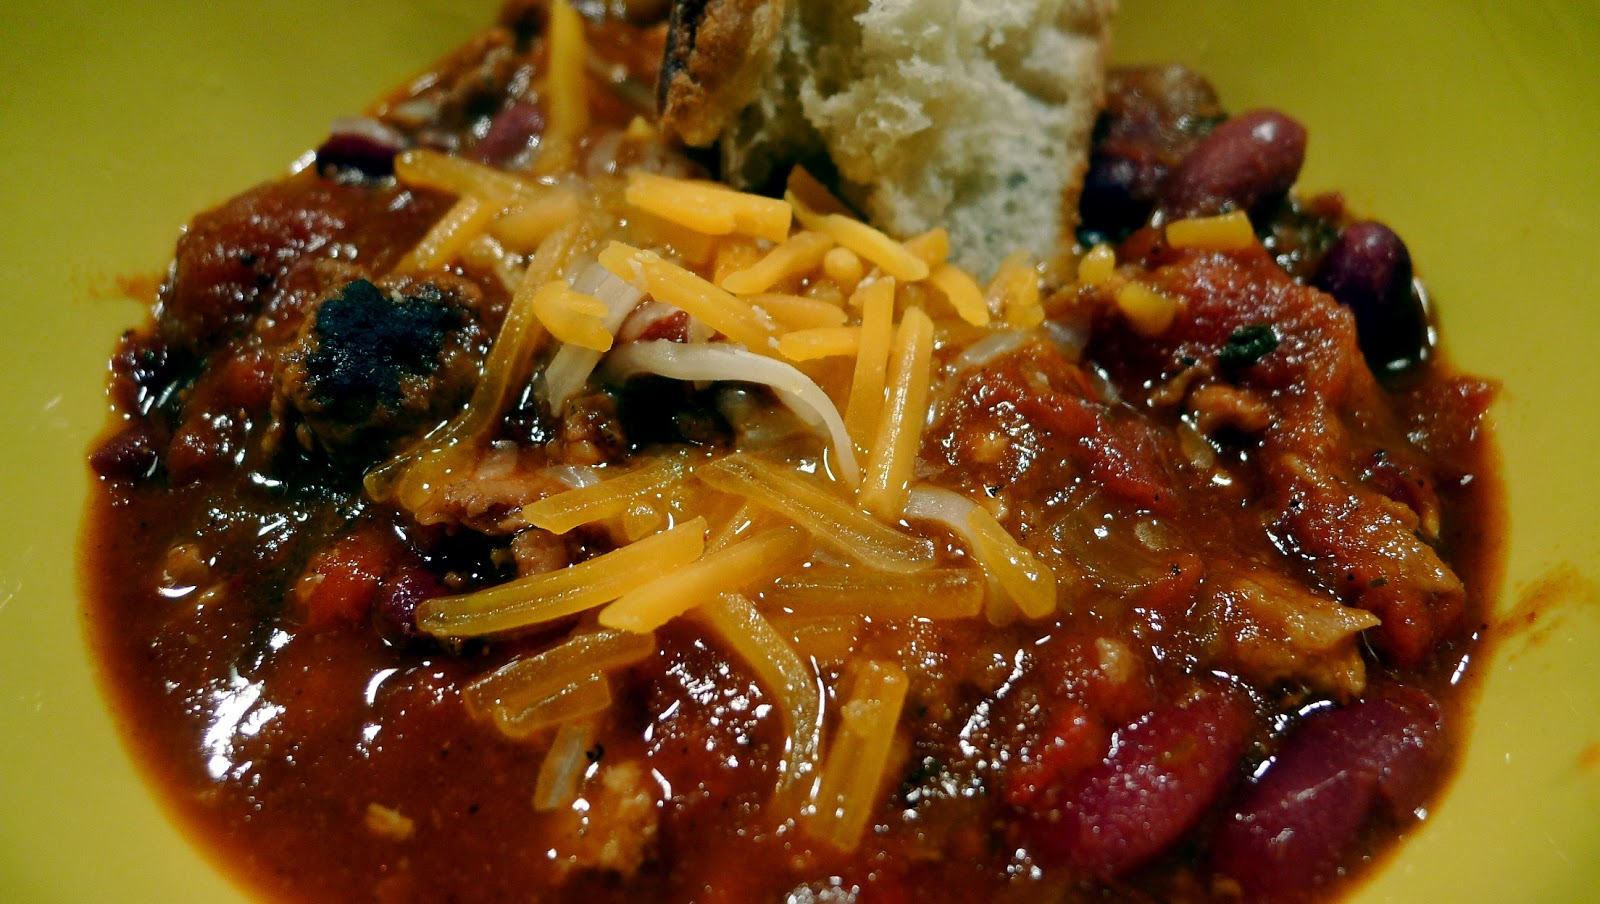 newFOOD tuesdayz: Chicken Apple and Andouille Sausage Chili